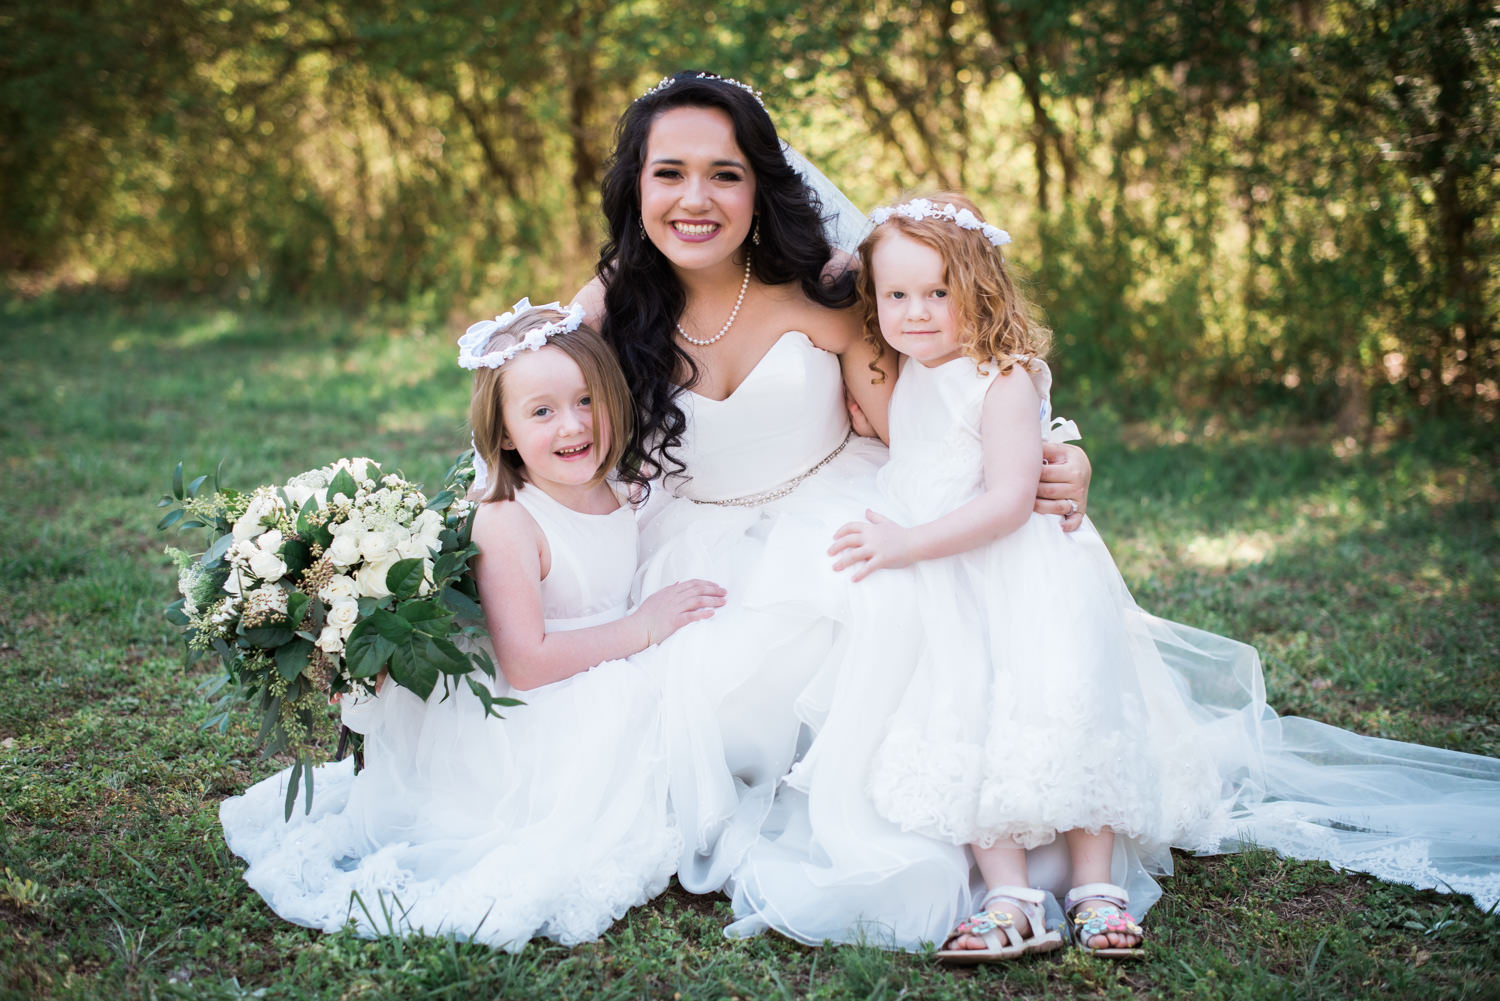 Georgia-wedding-flower-girls-40.jpg